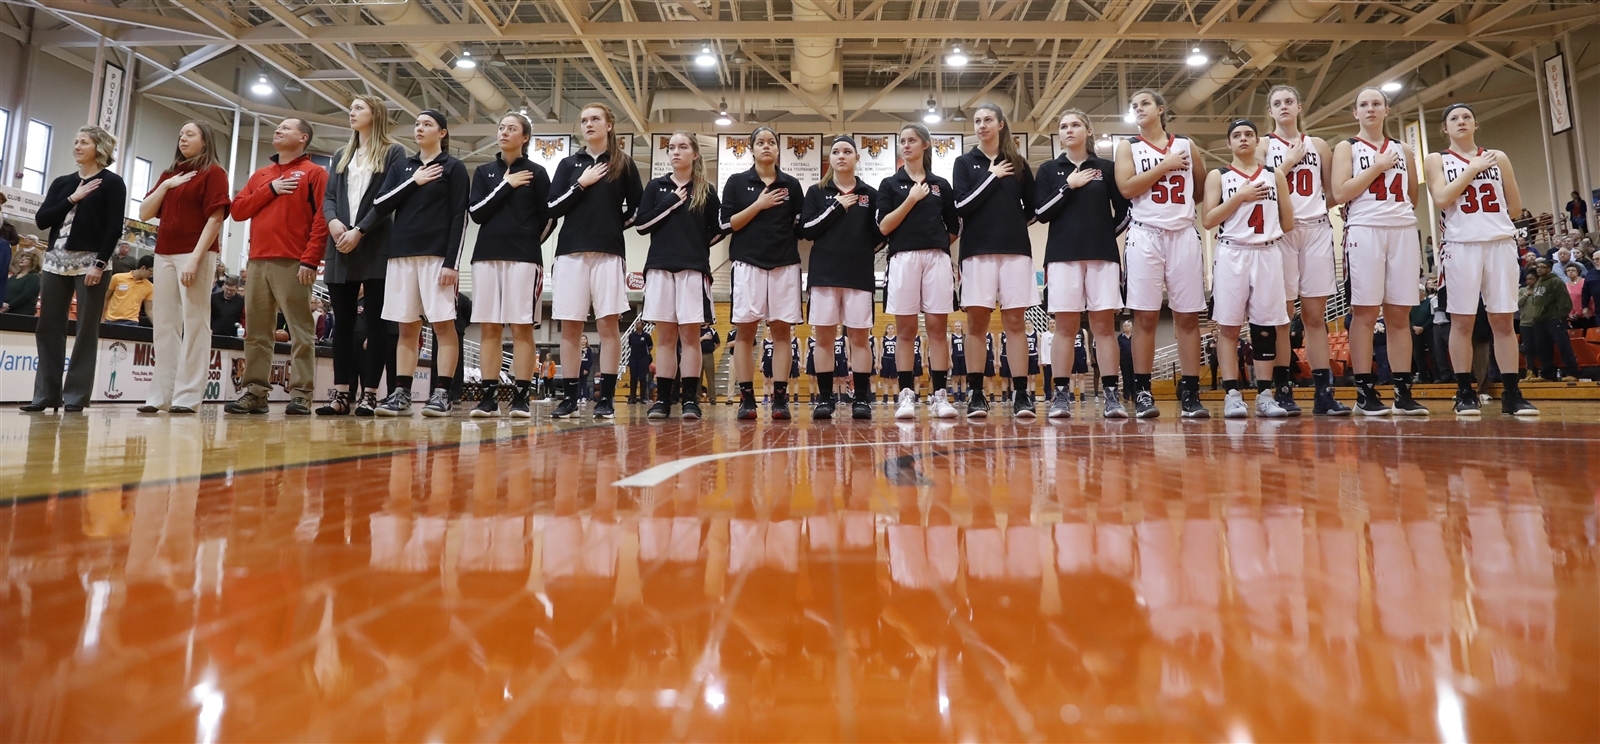 Clarence players and coaches stand for the national anthem prior to playing Our Lady of Mercy Monarchs for the New York State AA Far West Regional Championship at the Buffalo State Sports Arena on Saturday, March 11, 2017.